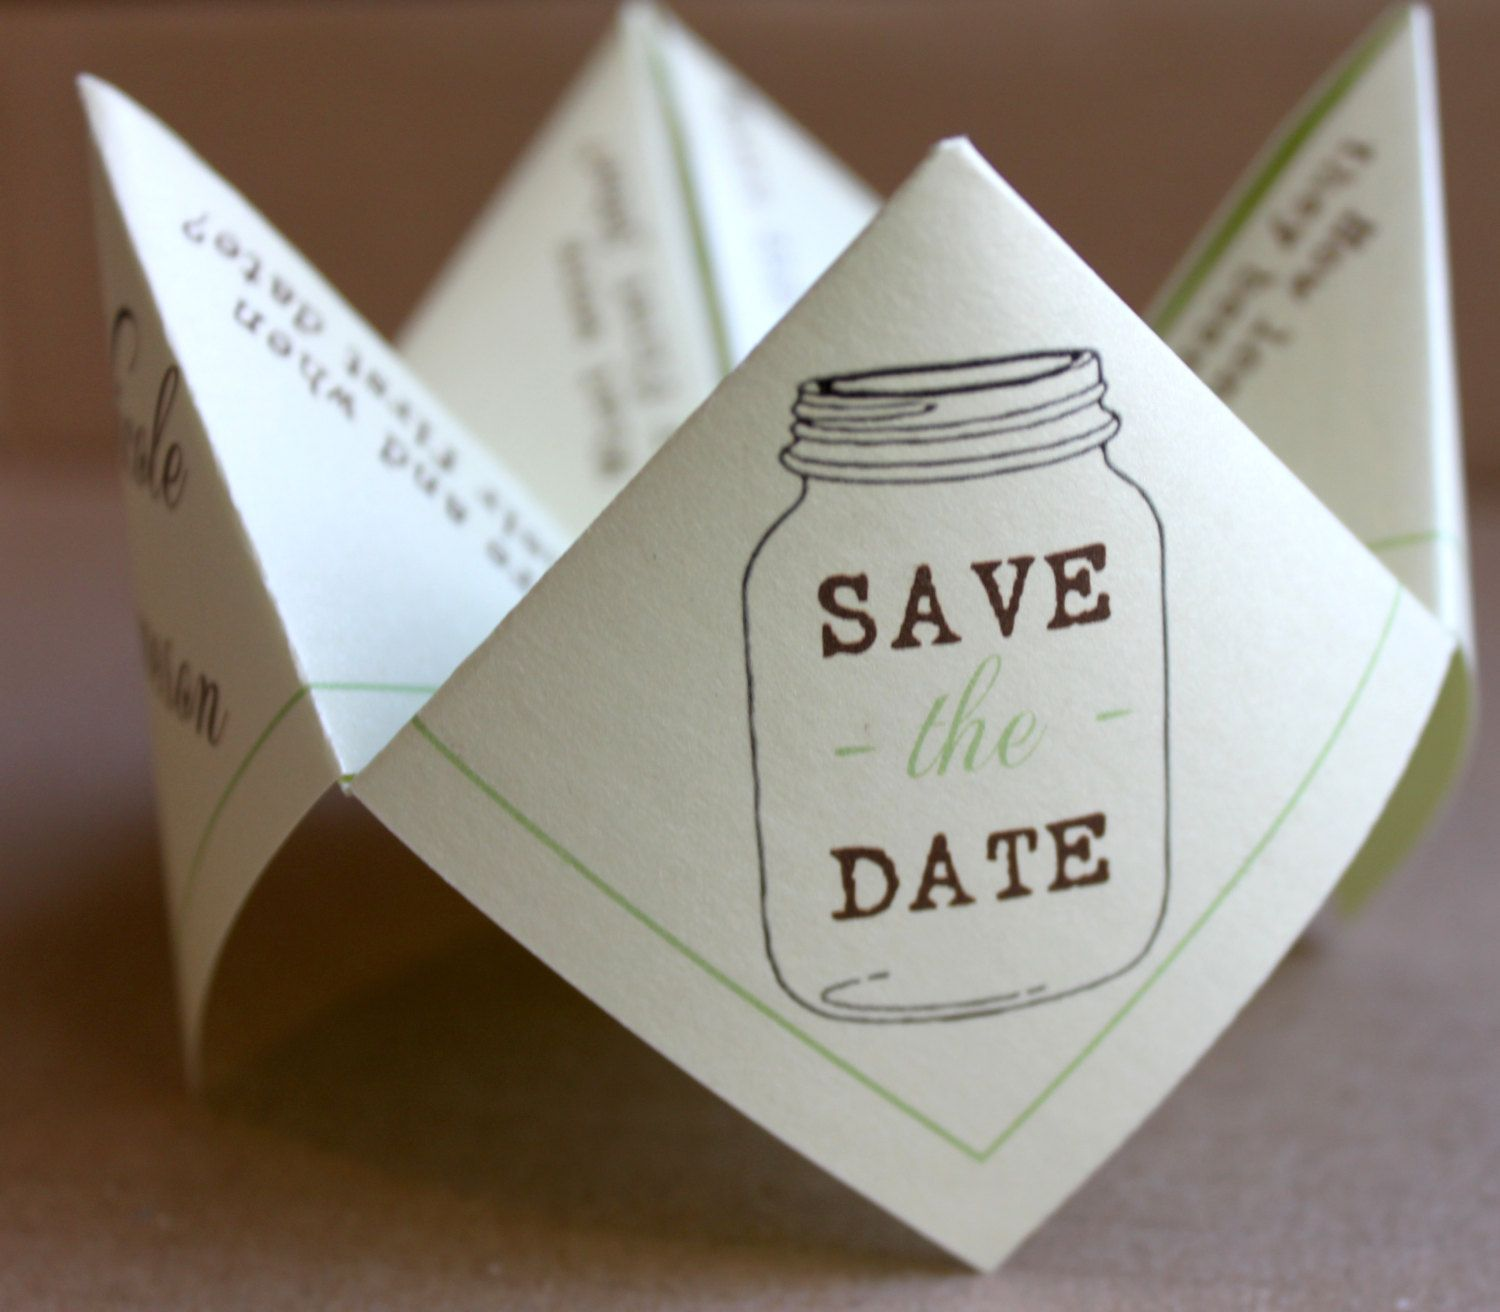 15 Brilliantly Creative Save the Date Ideas – Diy Wedding Save the Date Ideas